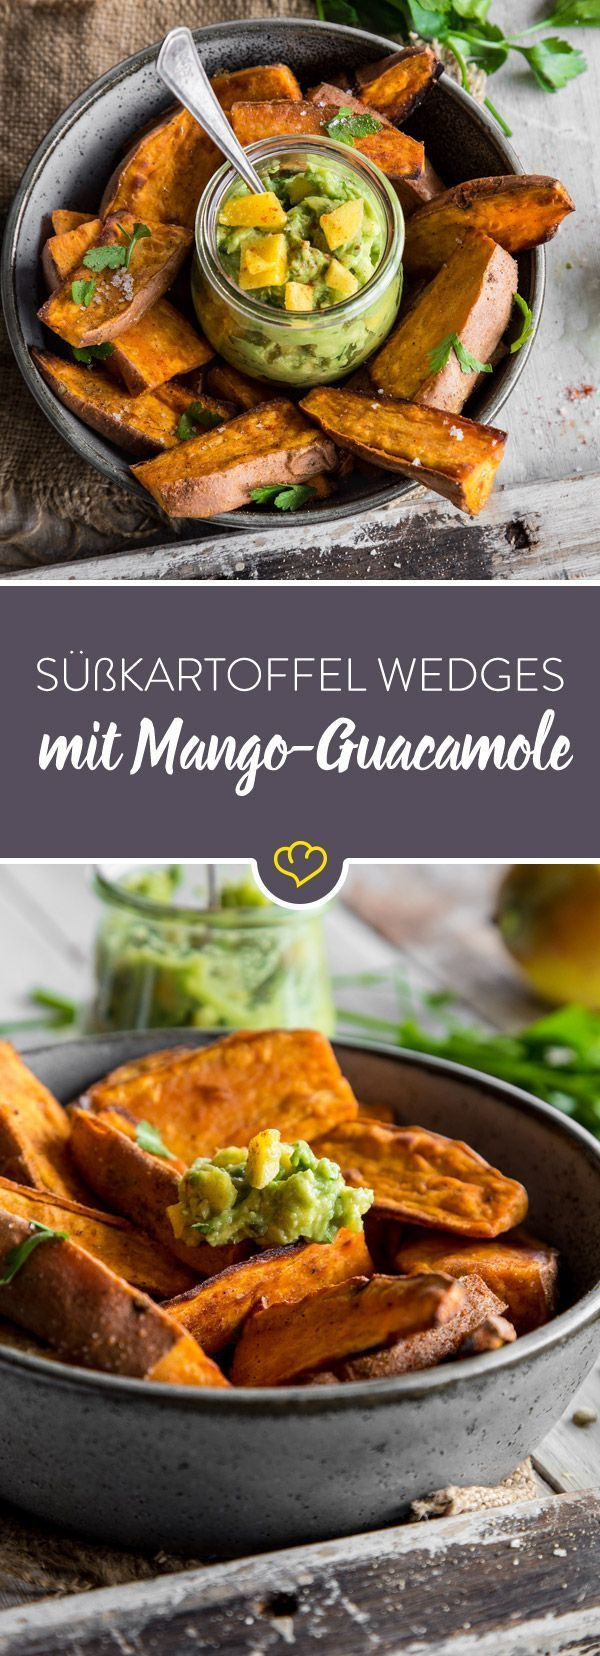 Süßkartoffel Wedges mit Mango-Guacamole #sweetpotatorecipes